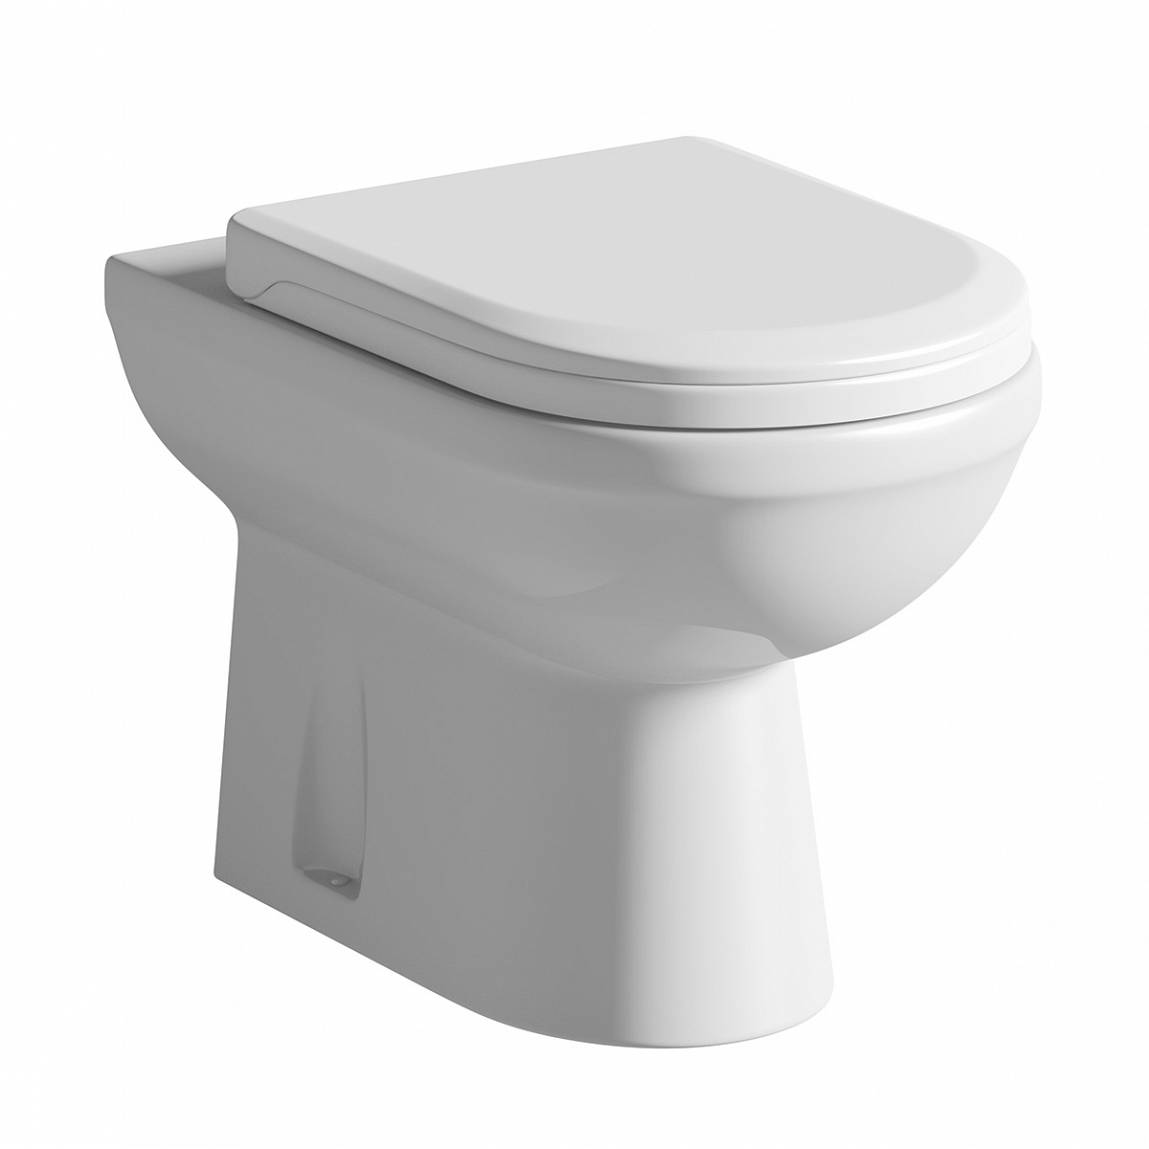 Image of Autograph Back To Wall Toilet exc Seat + Shut Off Valve